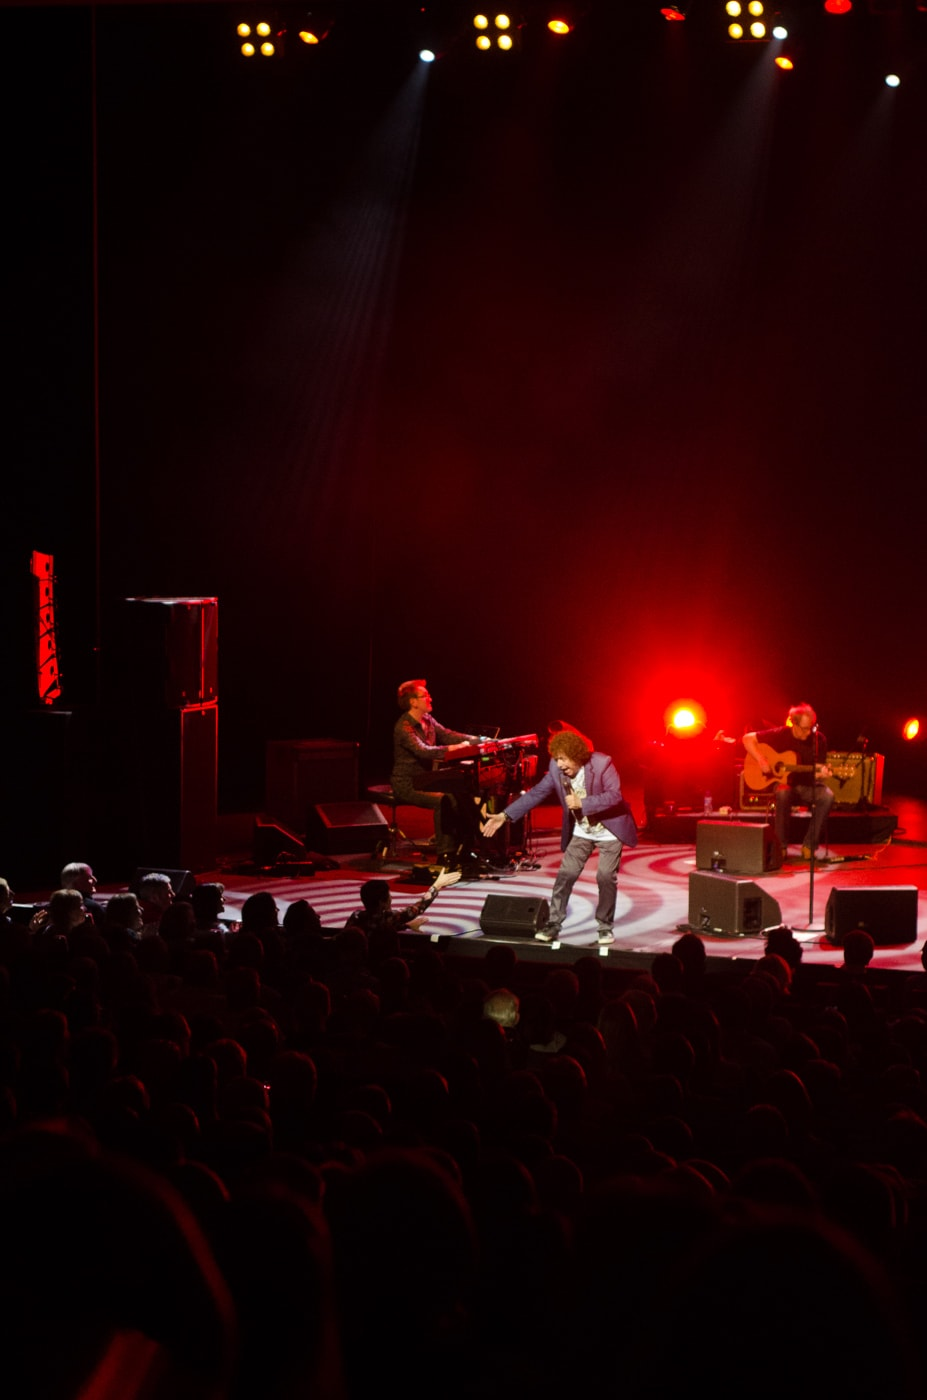 Leo Sayer at Bord Gais Energy Theatre by Sean Smyth (16-10-15) (42 of 129)